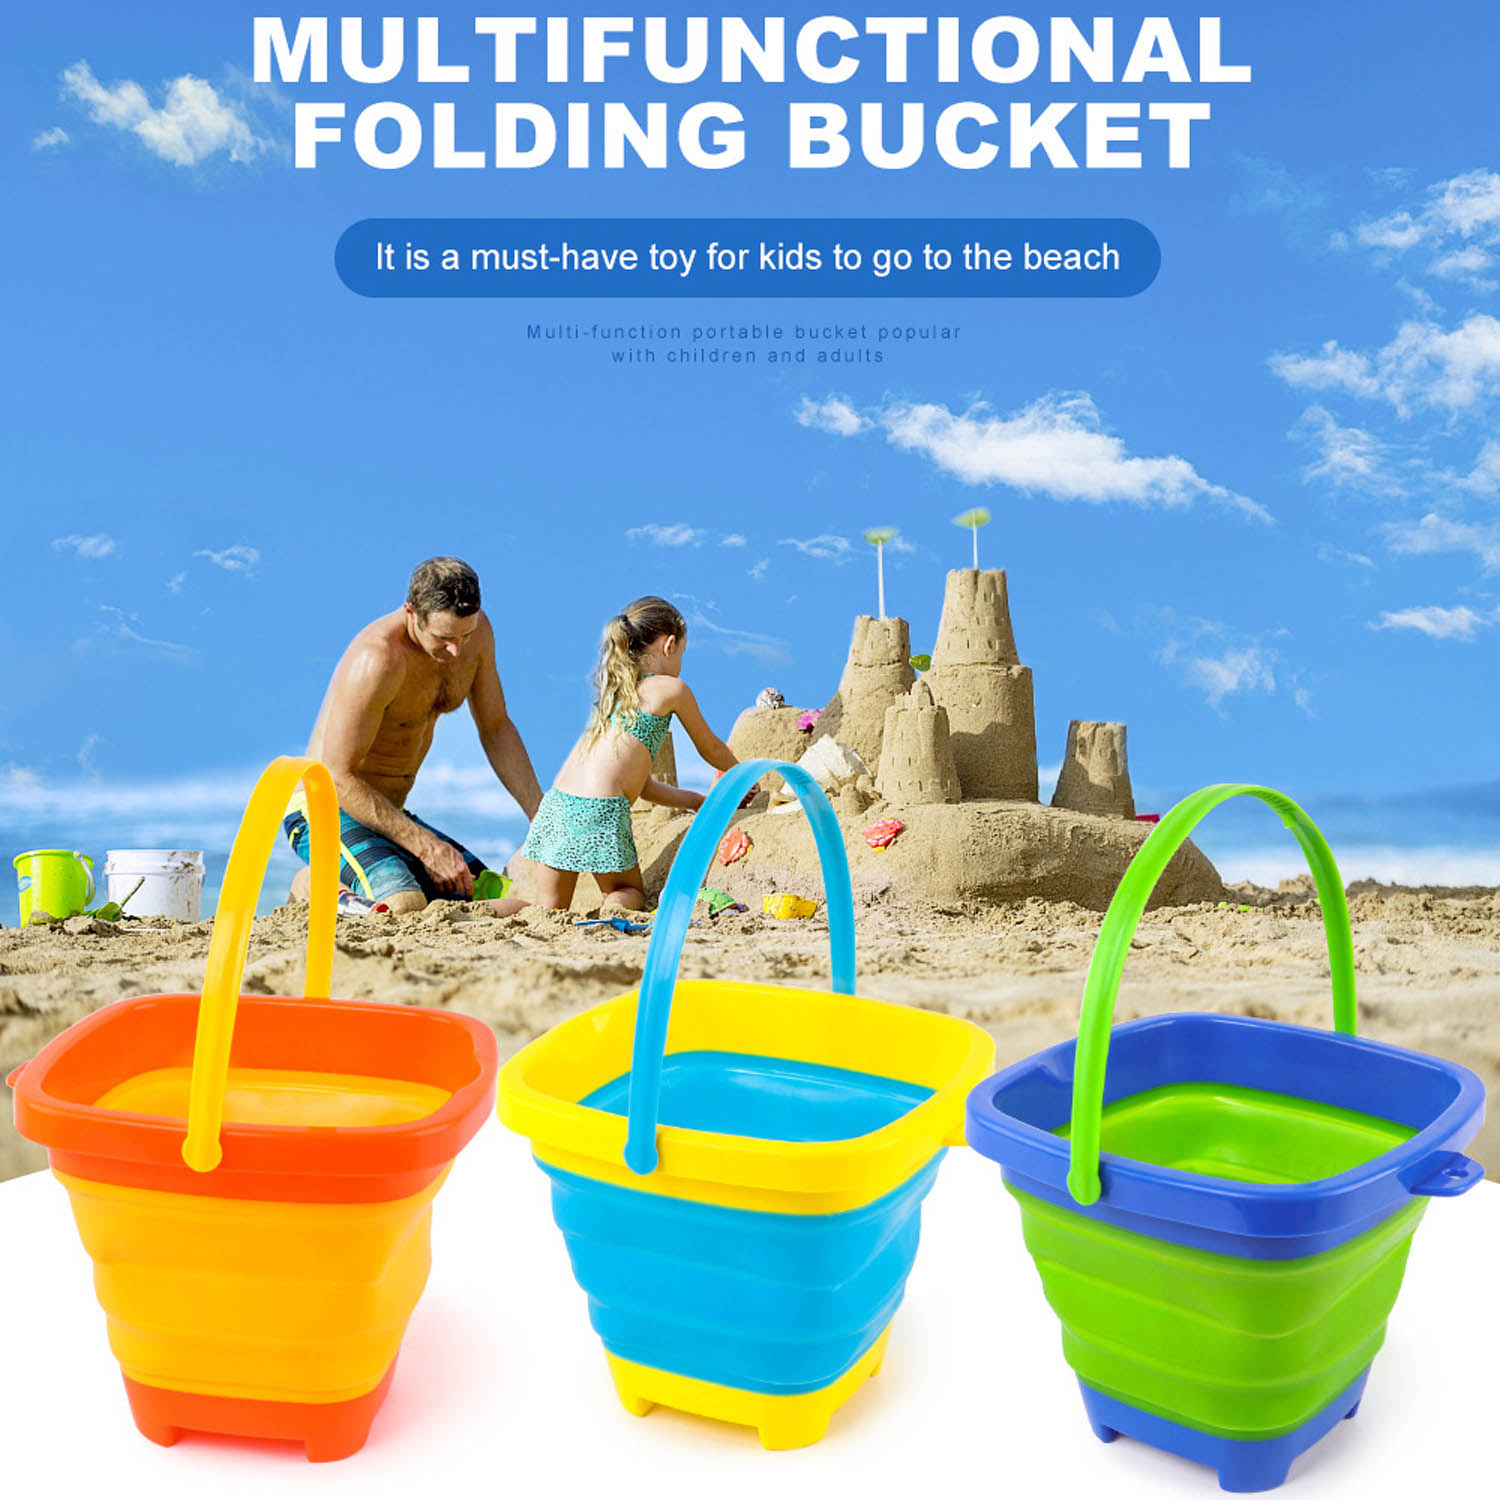 Kids Portable Silicone Foldable Sand Bucket Beach Sand Water Play Tool Toy For Outdoor Travel Camping Playing